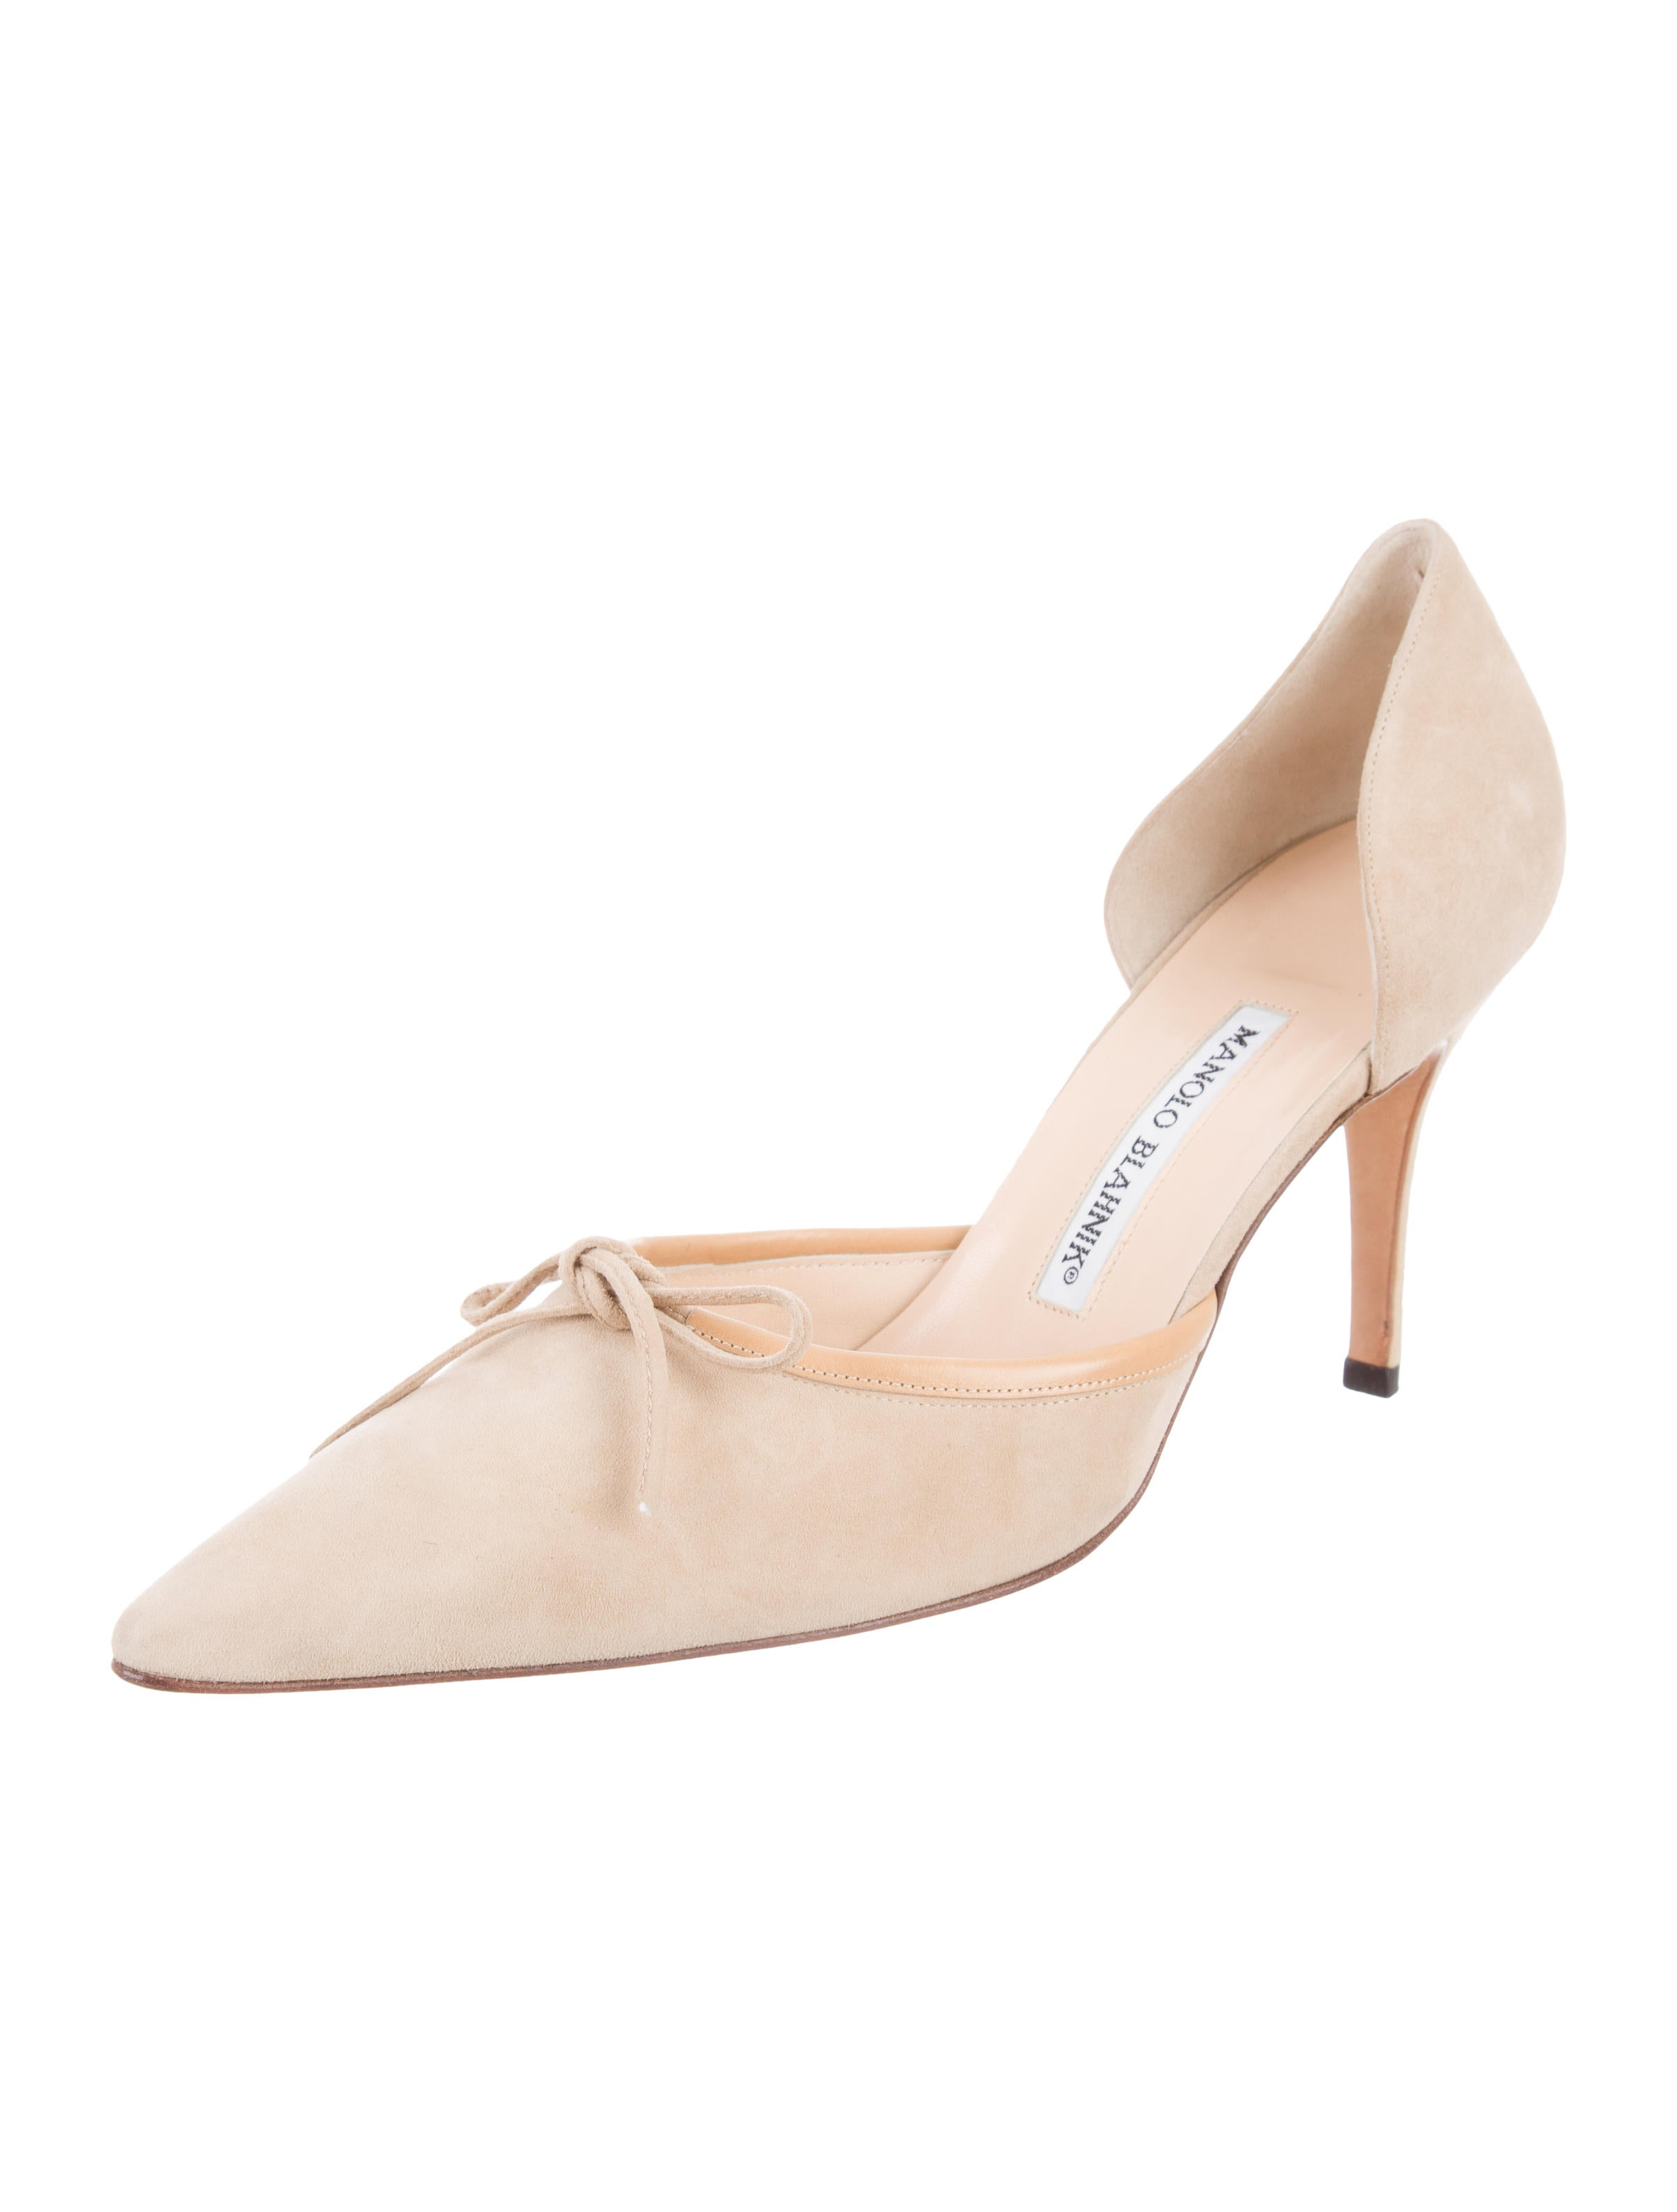 Manolo blahnik suede d 39 orsay pumps shoes moo72754 for Shoes by manolo blahnik